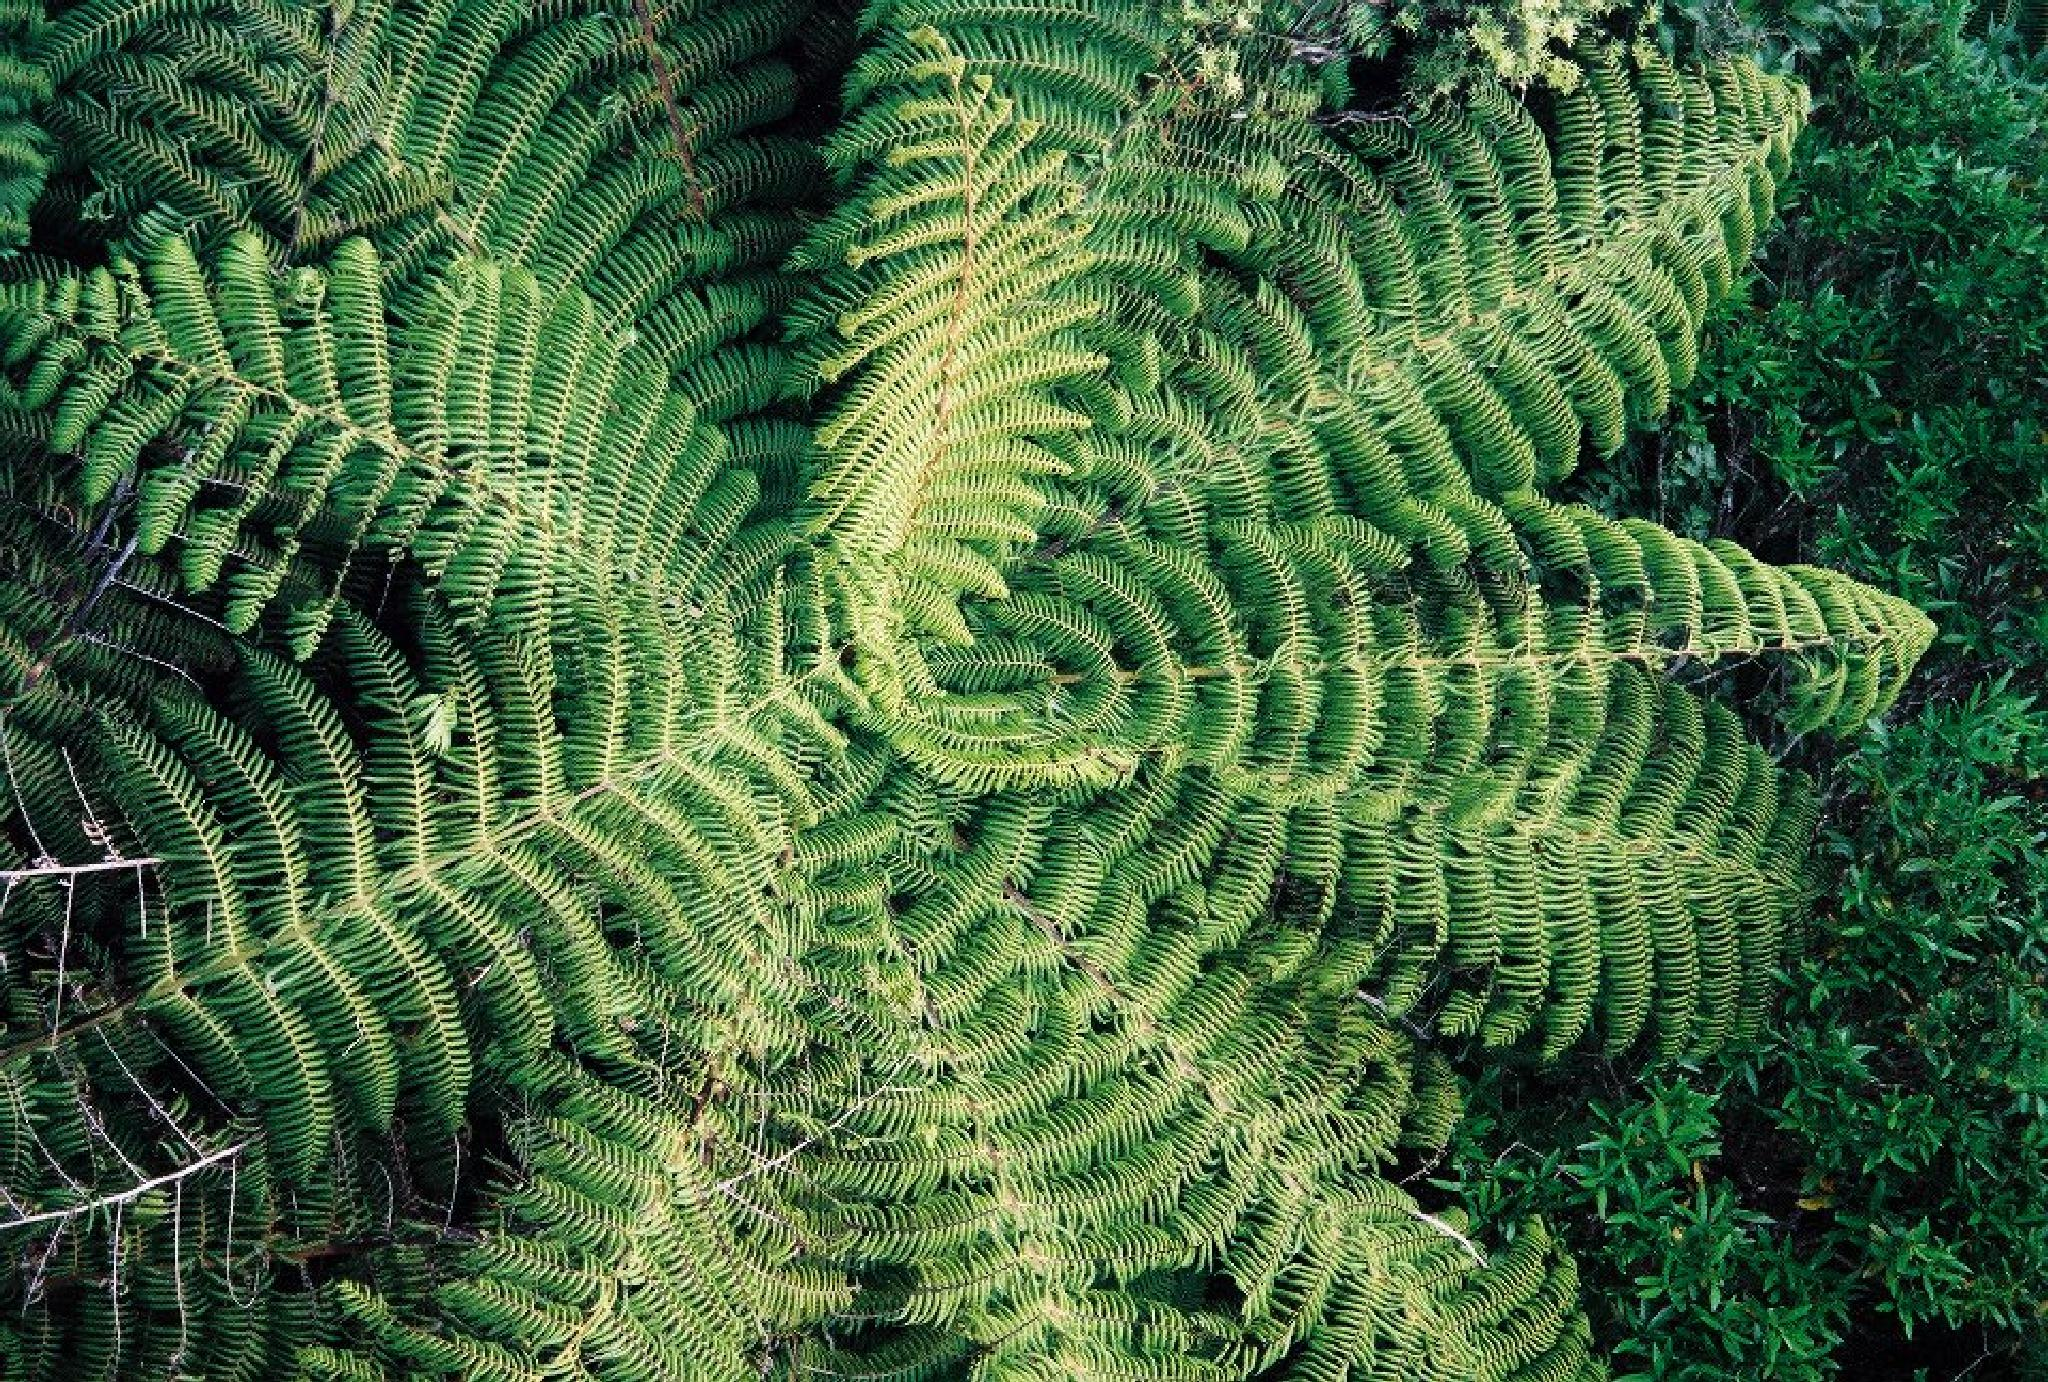 Crown of the Tree Fern by kathy.kelly.31924